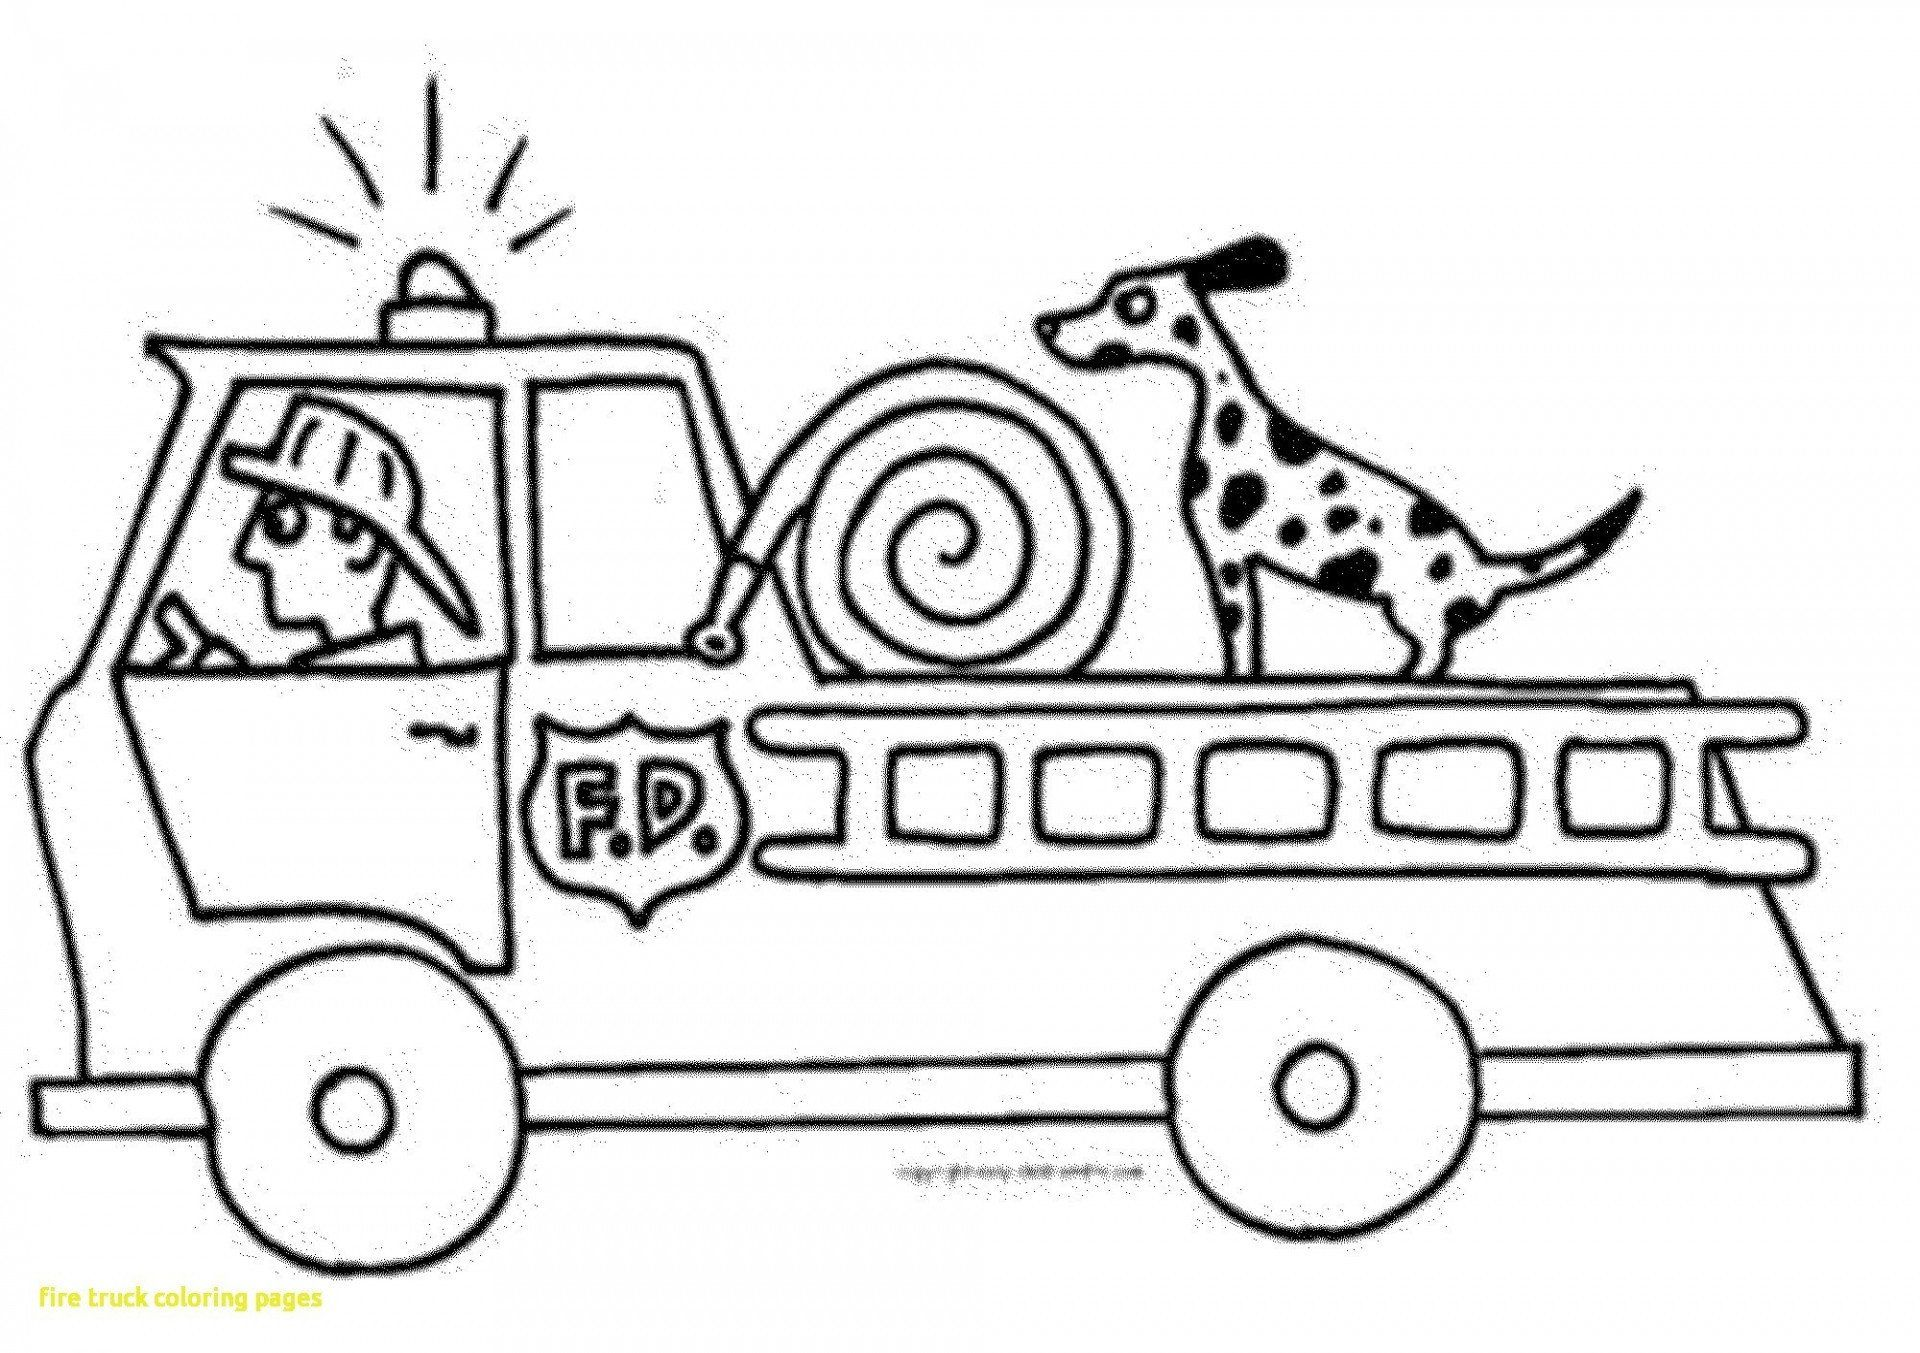 Fire Truck Coloring Page Best Of Dump Truck Coloring Pages Firetruck Coloring Page Truck Coloring Pages Fire Trucks